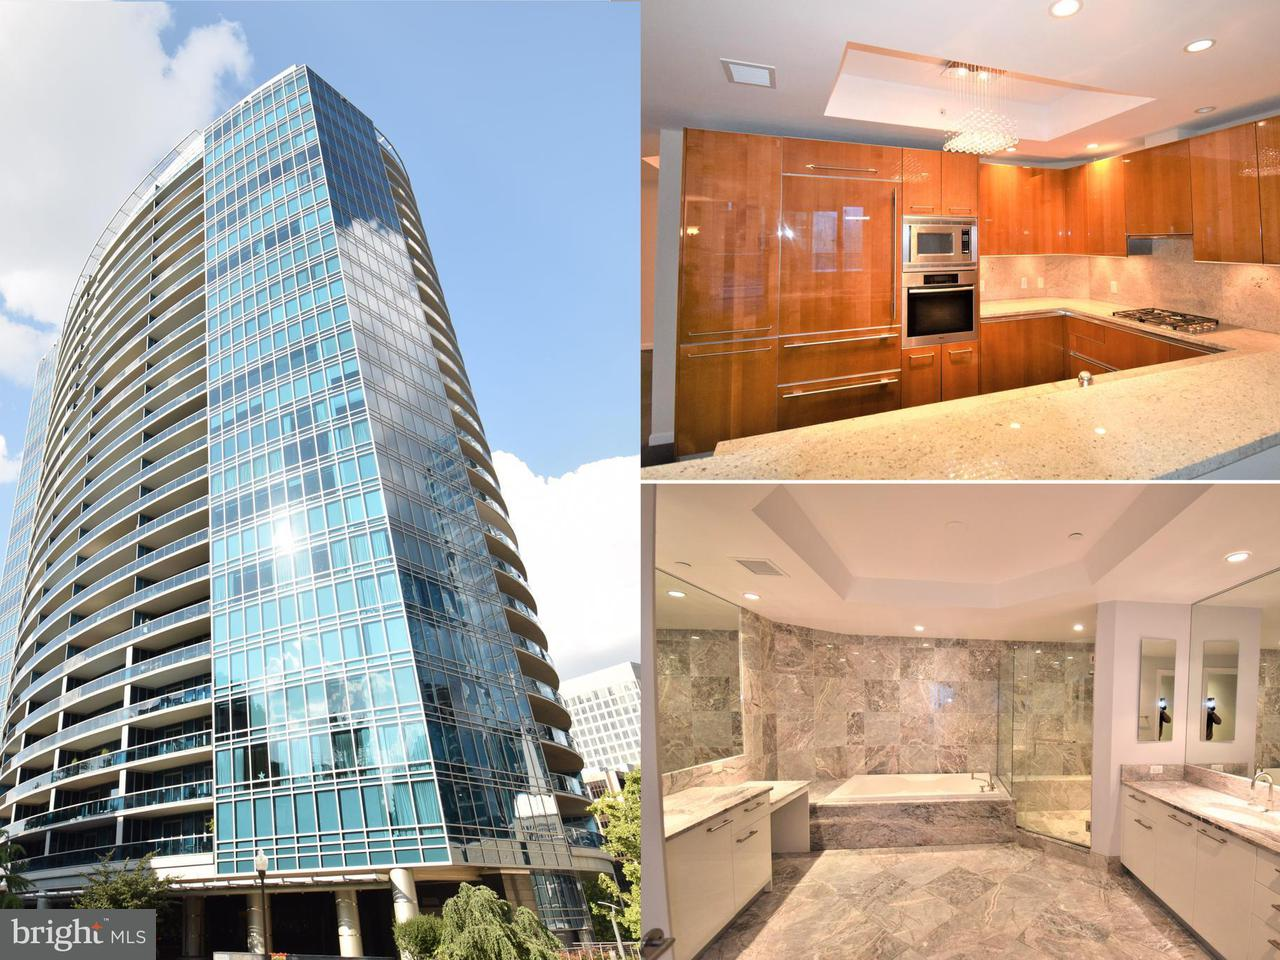 Condominium for Sale at 1881 Nash St N #206 1881 Nash St N #206 Arlington, Virginia 22209 United States